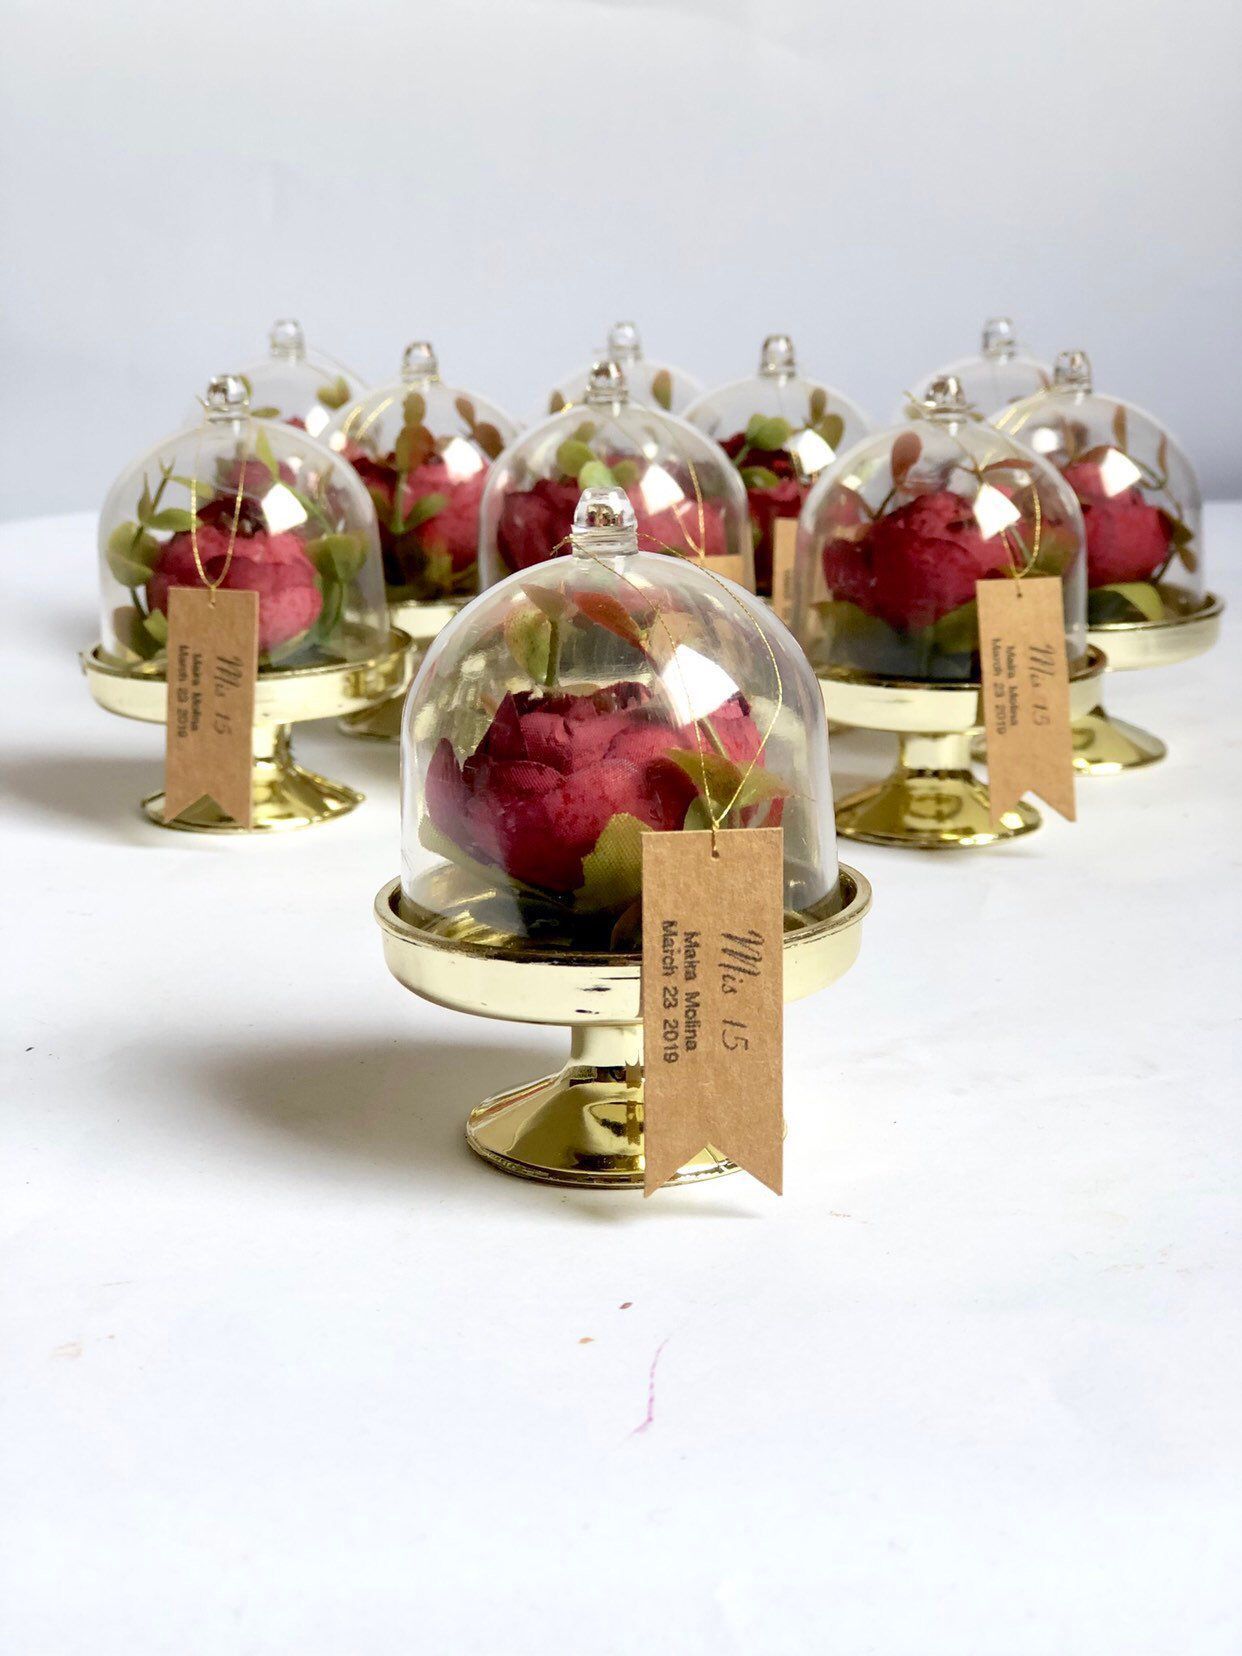 10 Pcs Beauty And The Beast Favor Cloche Dome Wedding Etsy Wedding Favours For Ladies Wedding Gifts For Guests Wedding Favors For Guests